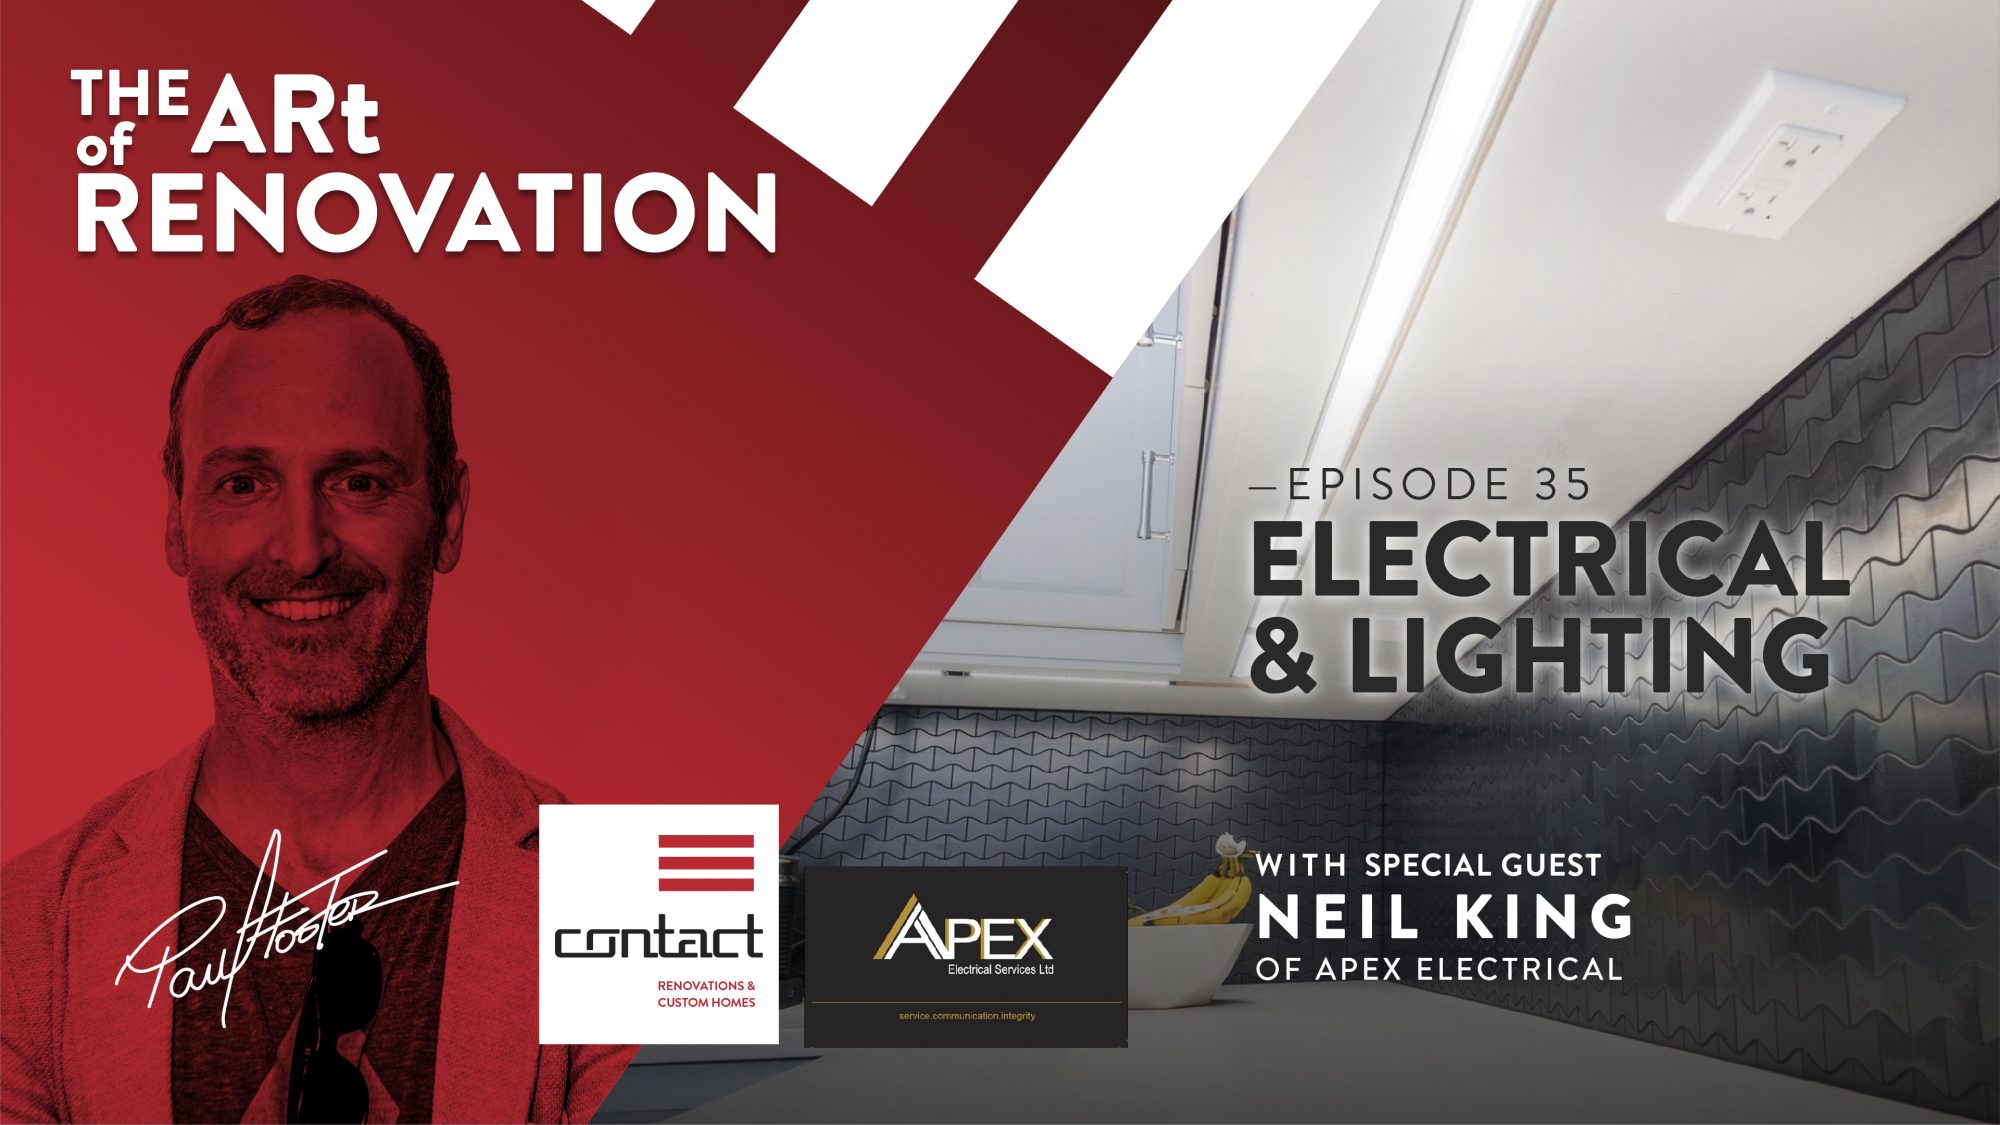 Electrical planning and lighting inspiration The Art of Renovation LIVE!